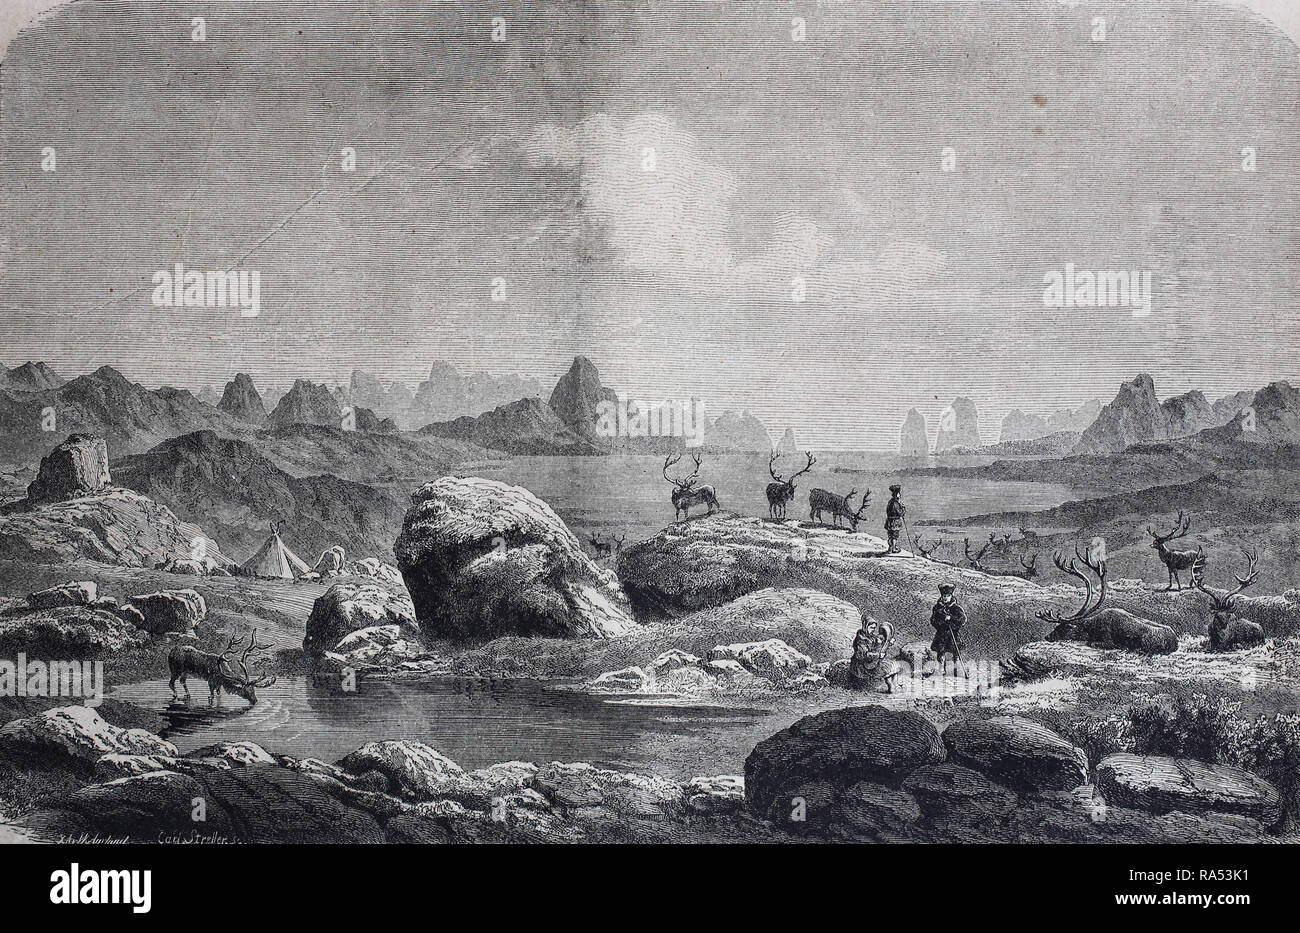 Digital improved reproduction, Sami people, Saami, Lapps or Laplanders with the reindeer in summer, Greenland, Fjeld - Lappen aus Grönland mit Rentieren auf ihrer Sommerweide am Eismeer, from an original print from the year 1865, 19th century, - Stock Image